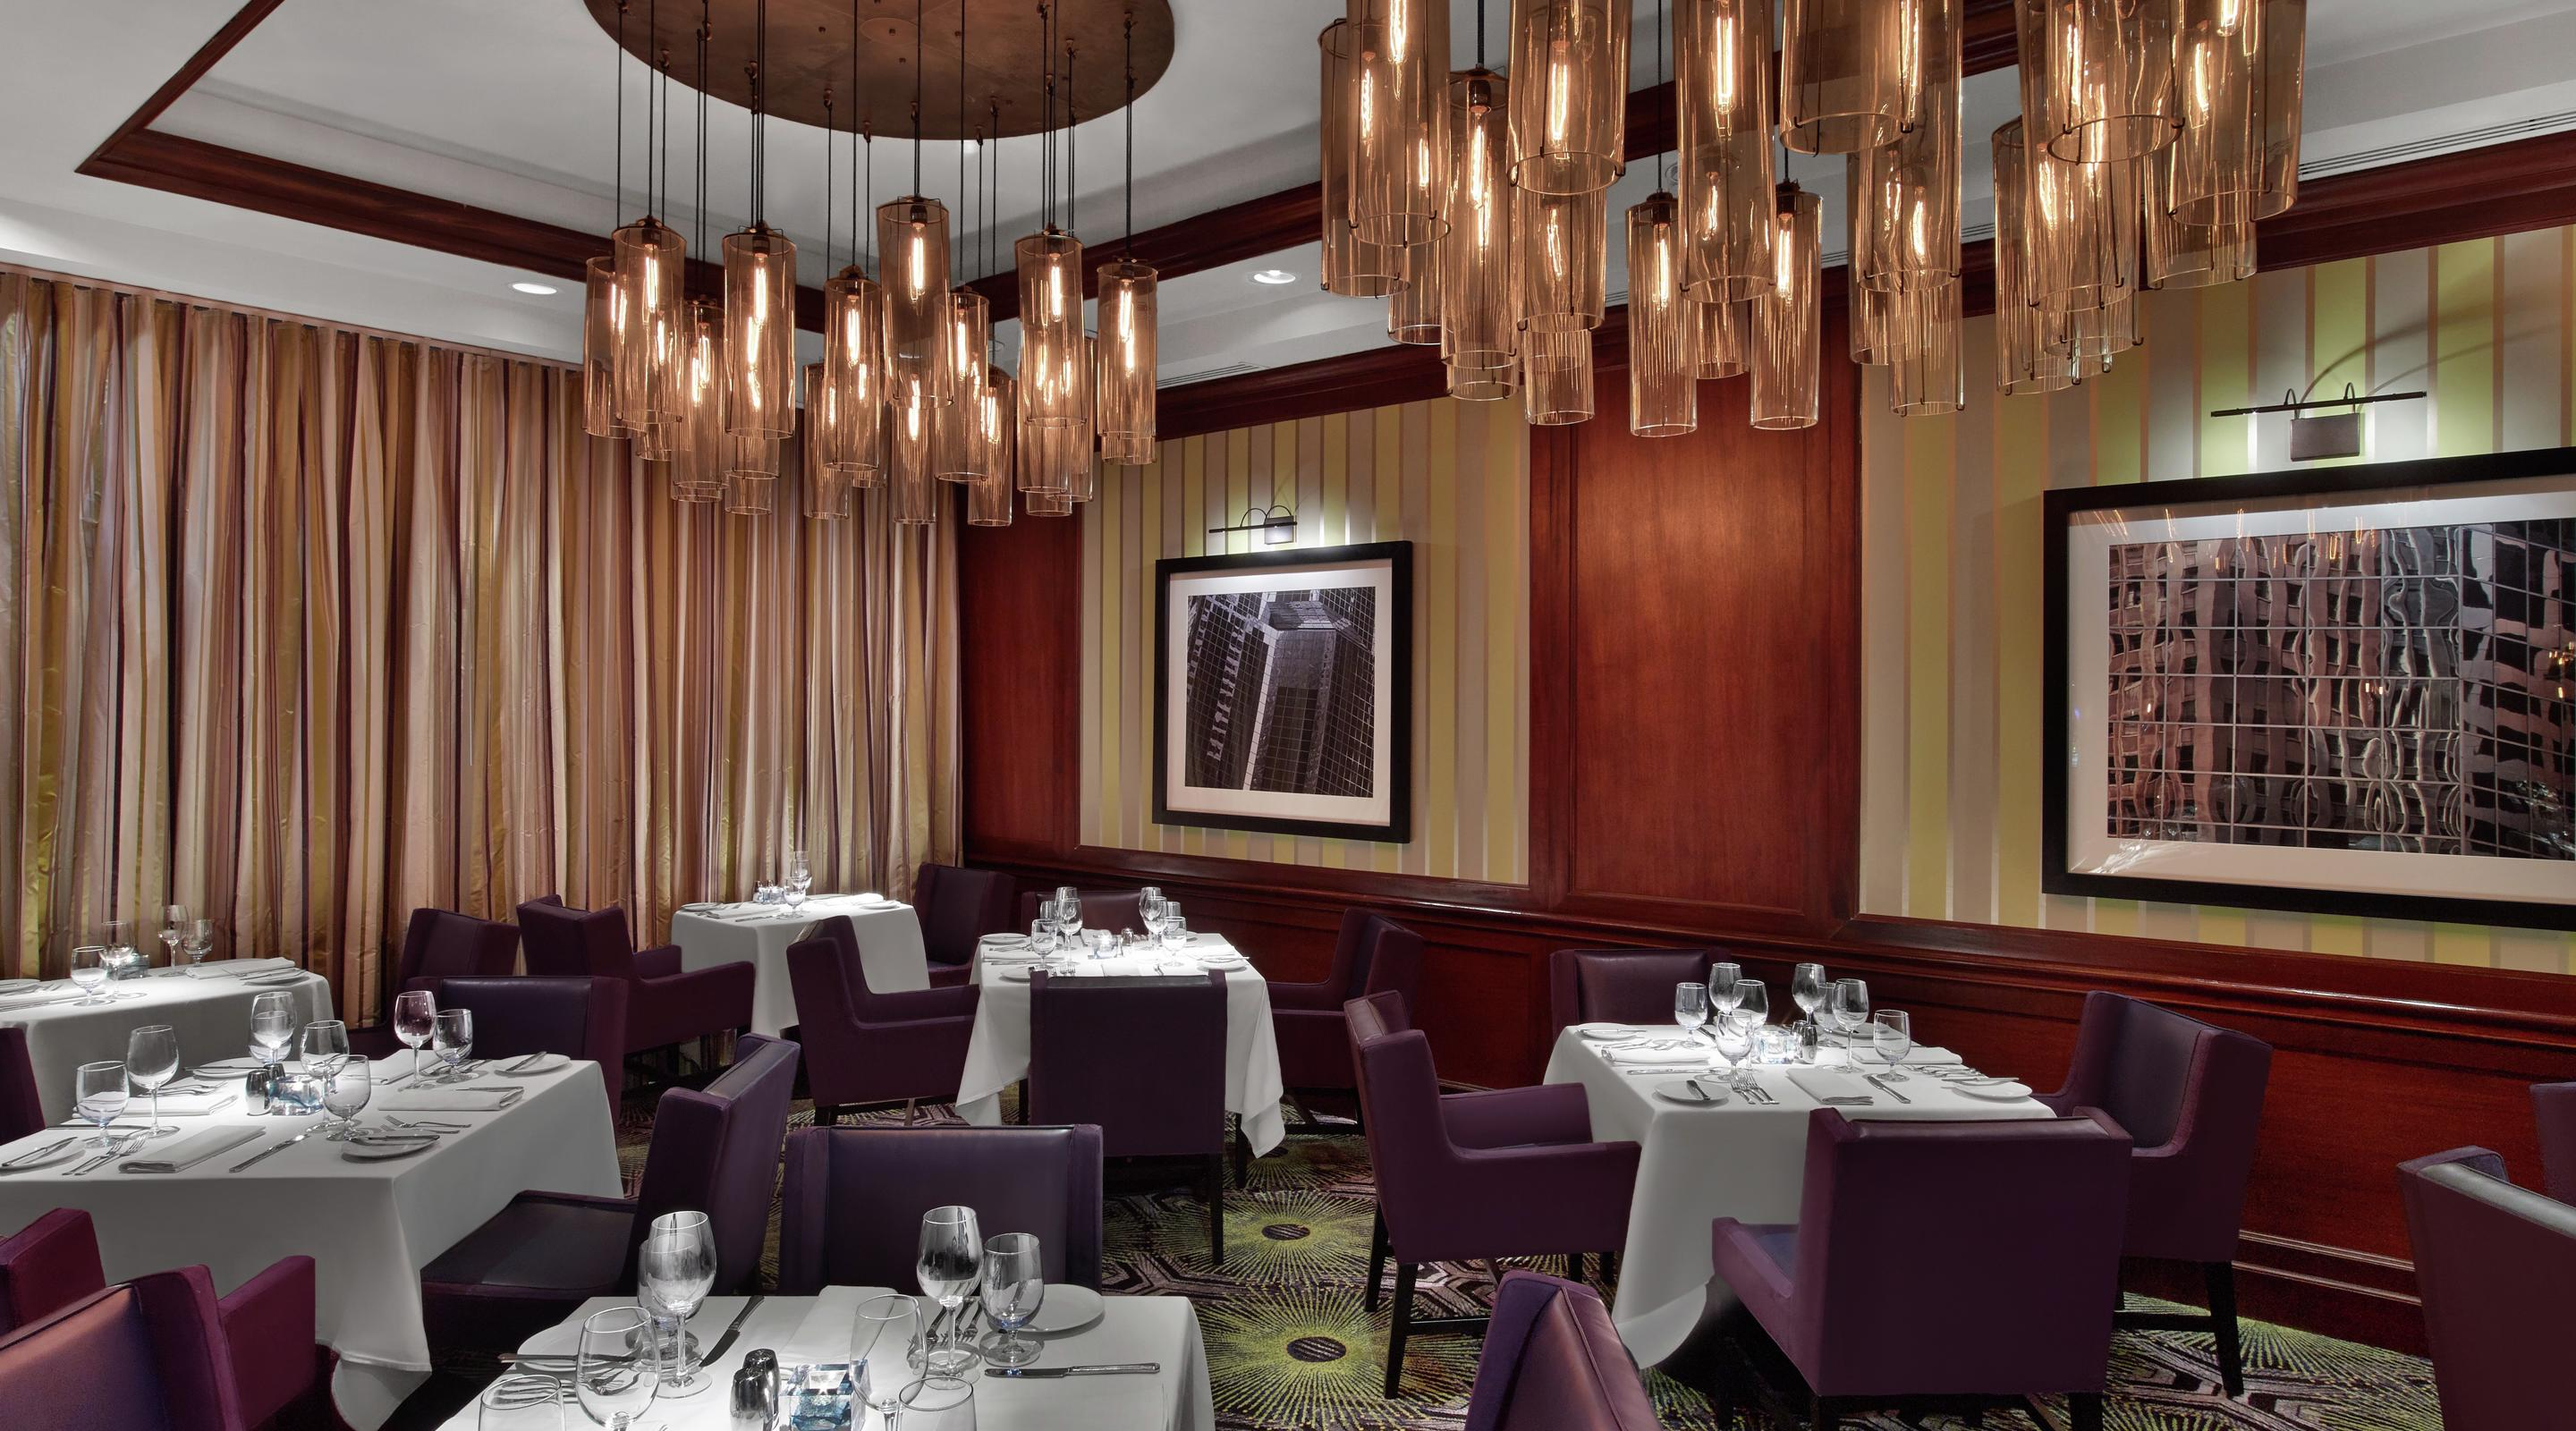 The Chicago Steakhouse offers the finest restaurant experience the Mid-South has to offer.